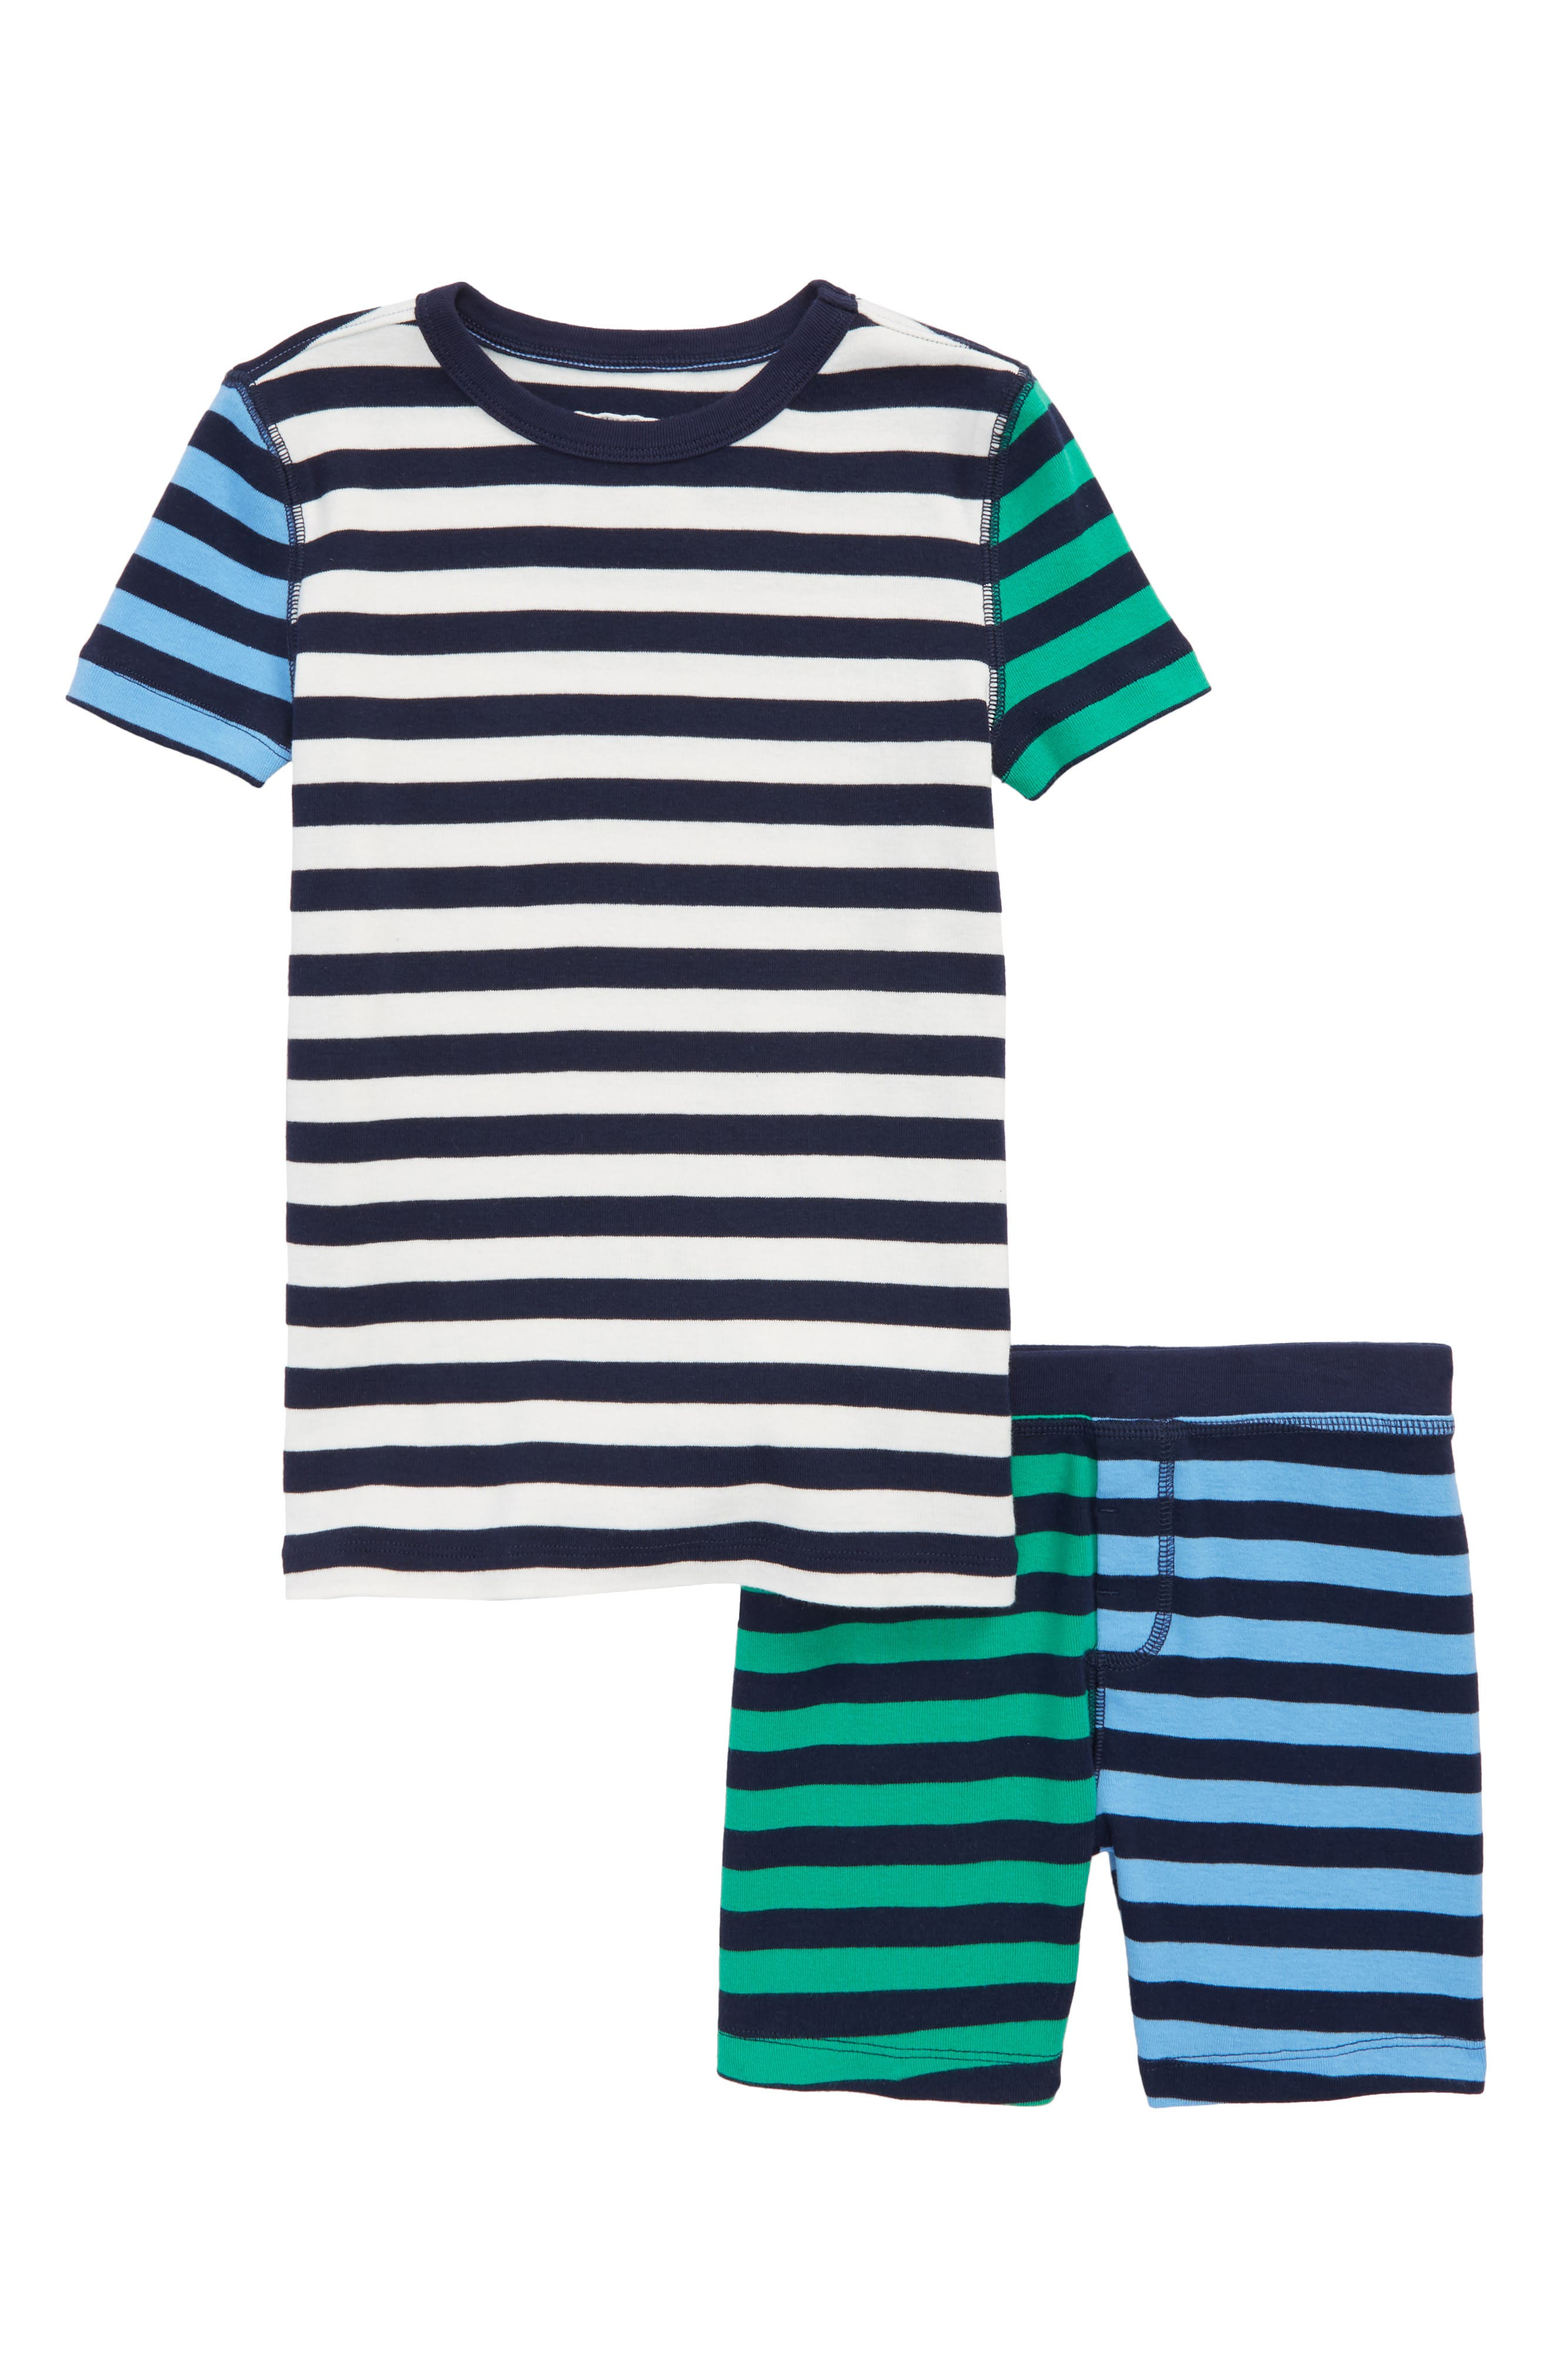 crewcuts by J.Crew Mixed Stripe Fitted Two-Piece Pajamas (Toddler Boys, Little Boys & Big Boys)